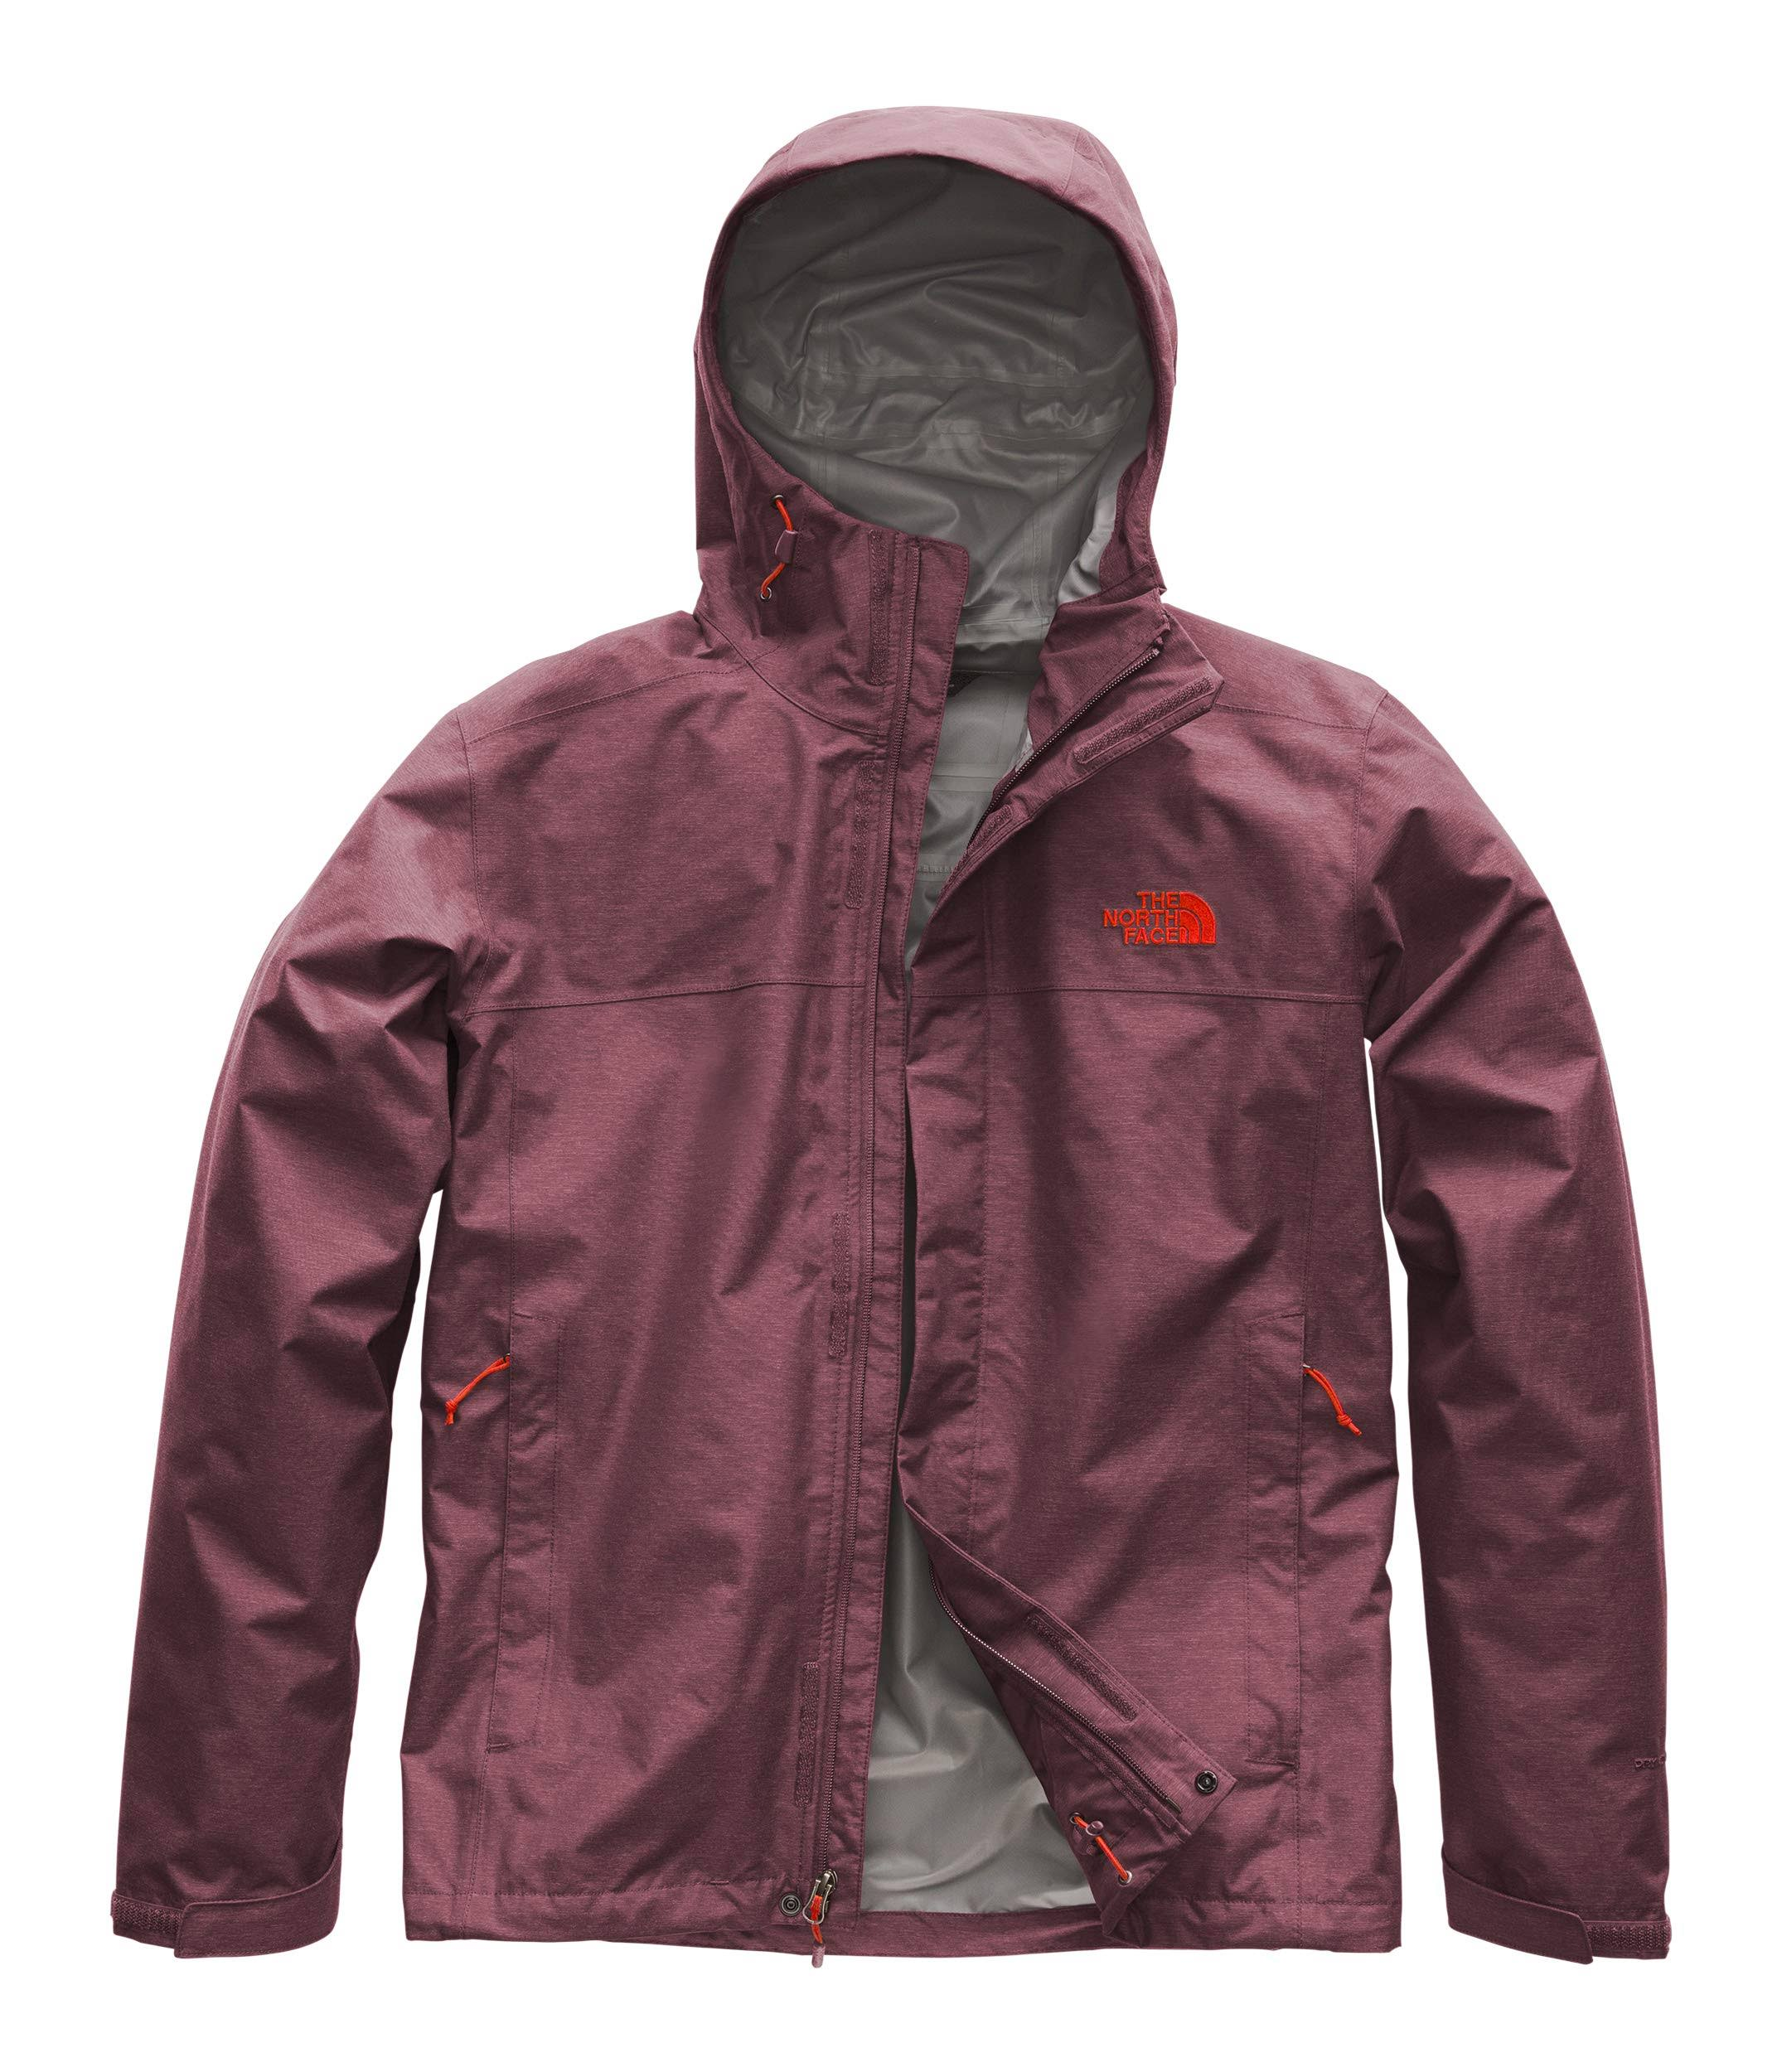 Higo 2 Venture North Y Heather The Face Para Hombre L Chaqueta De 8fW1S8c